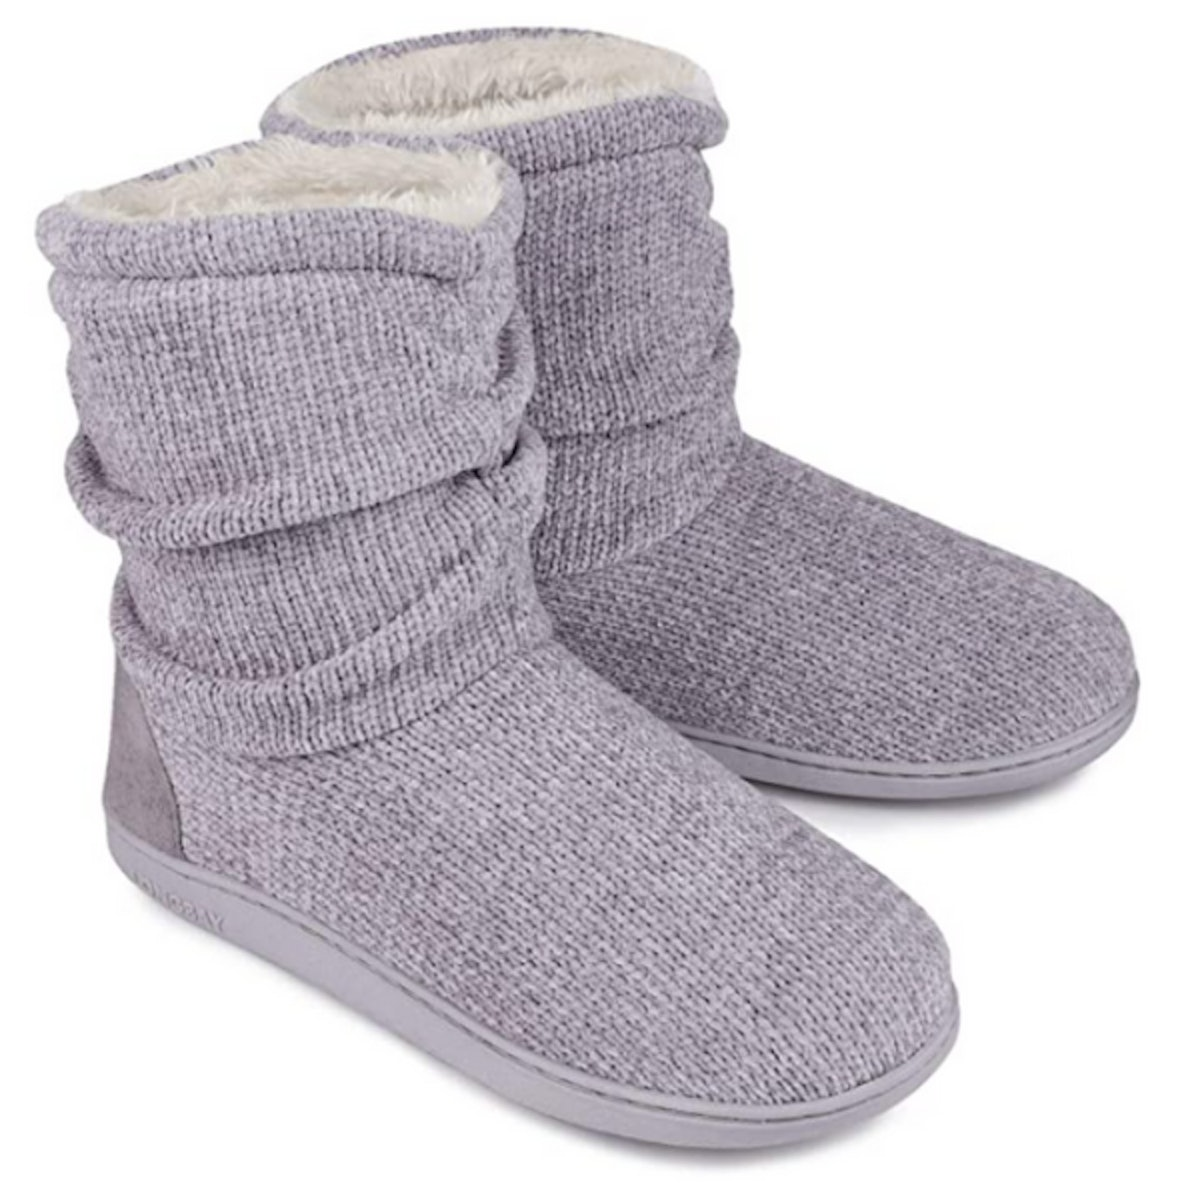 LongBay Chenille Knit Bootie Slippers